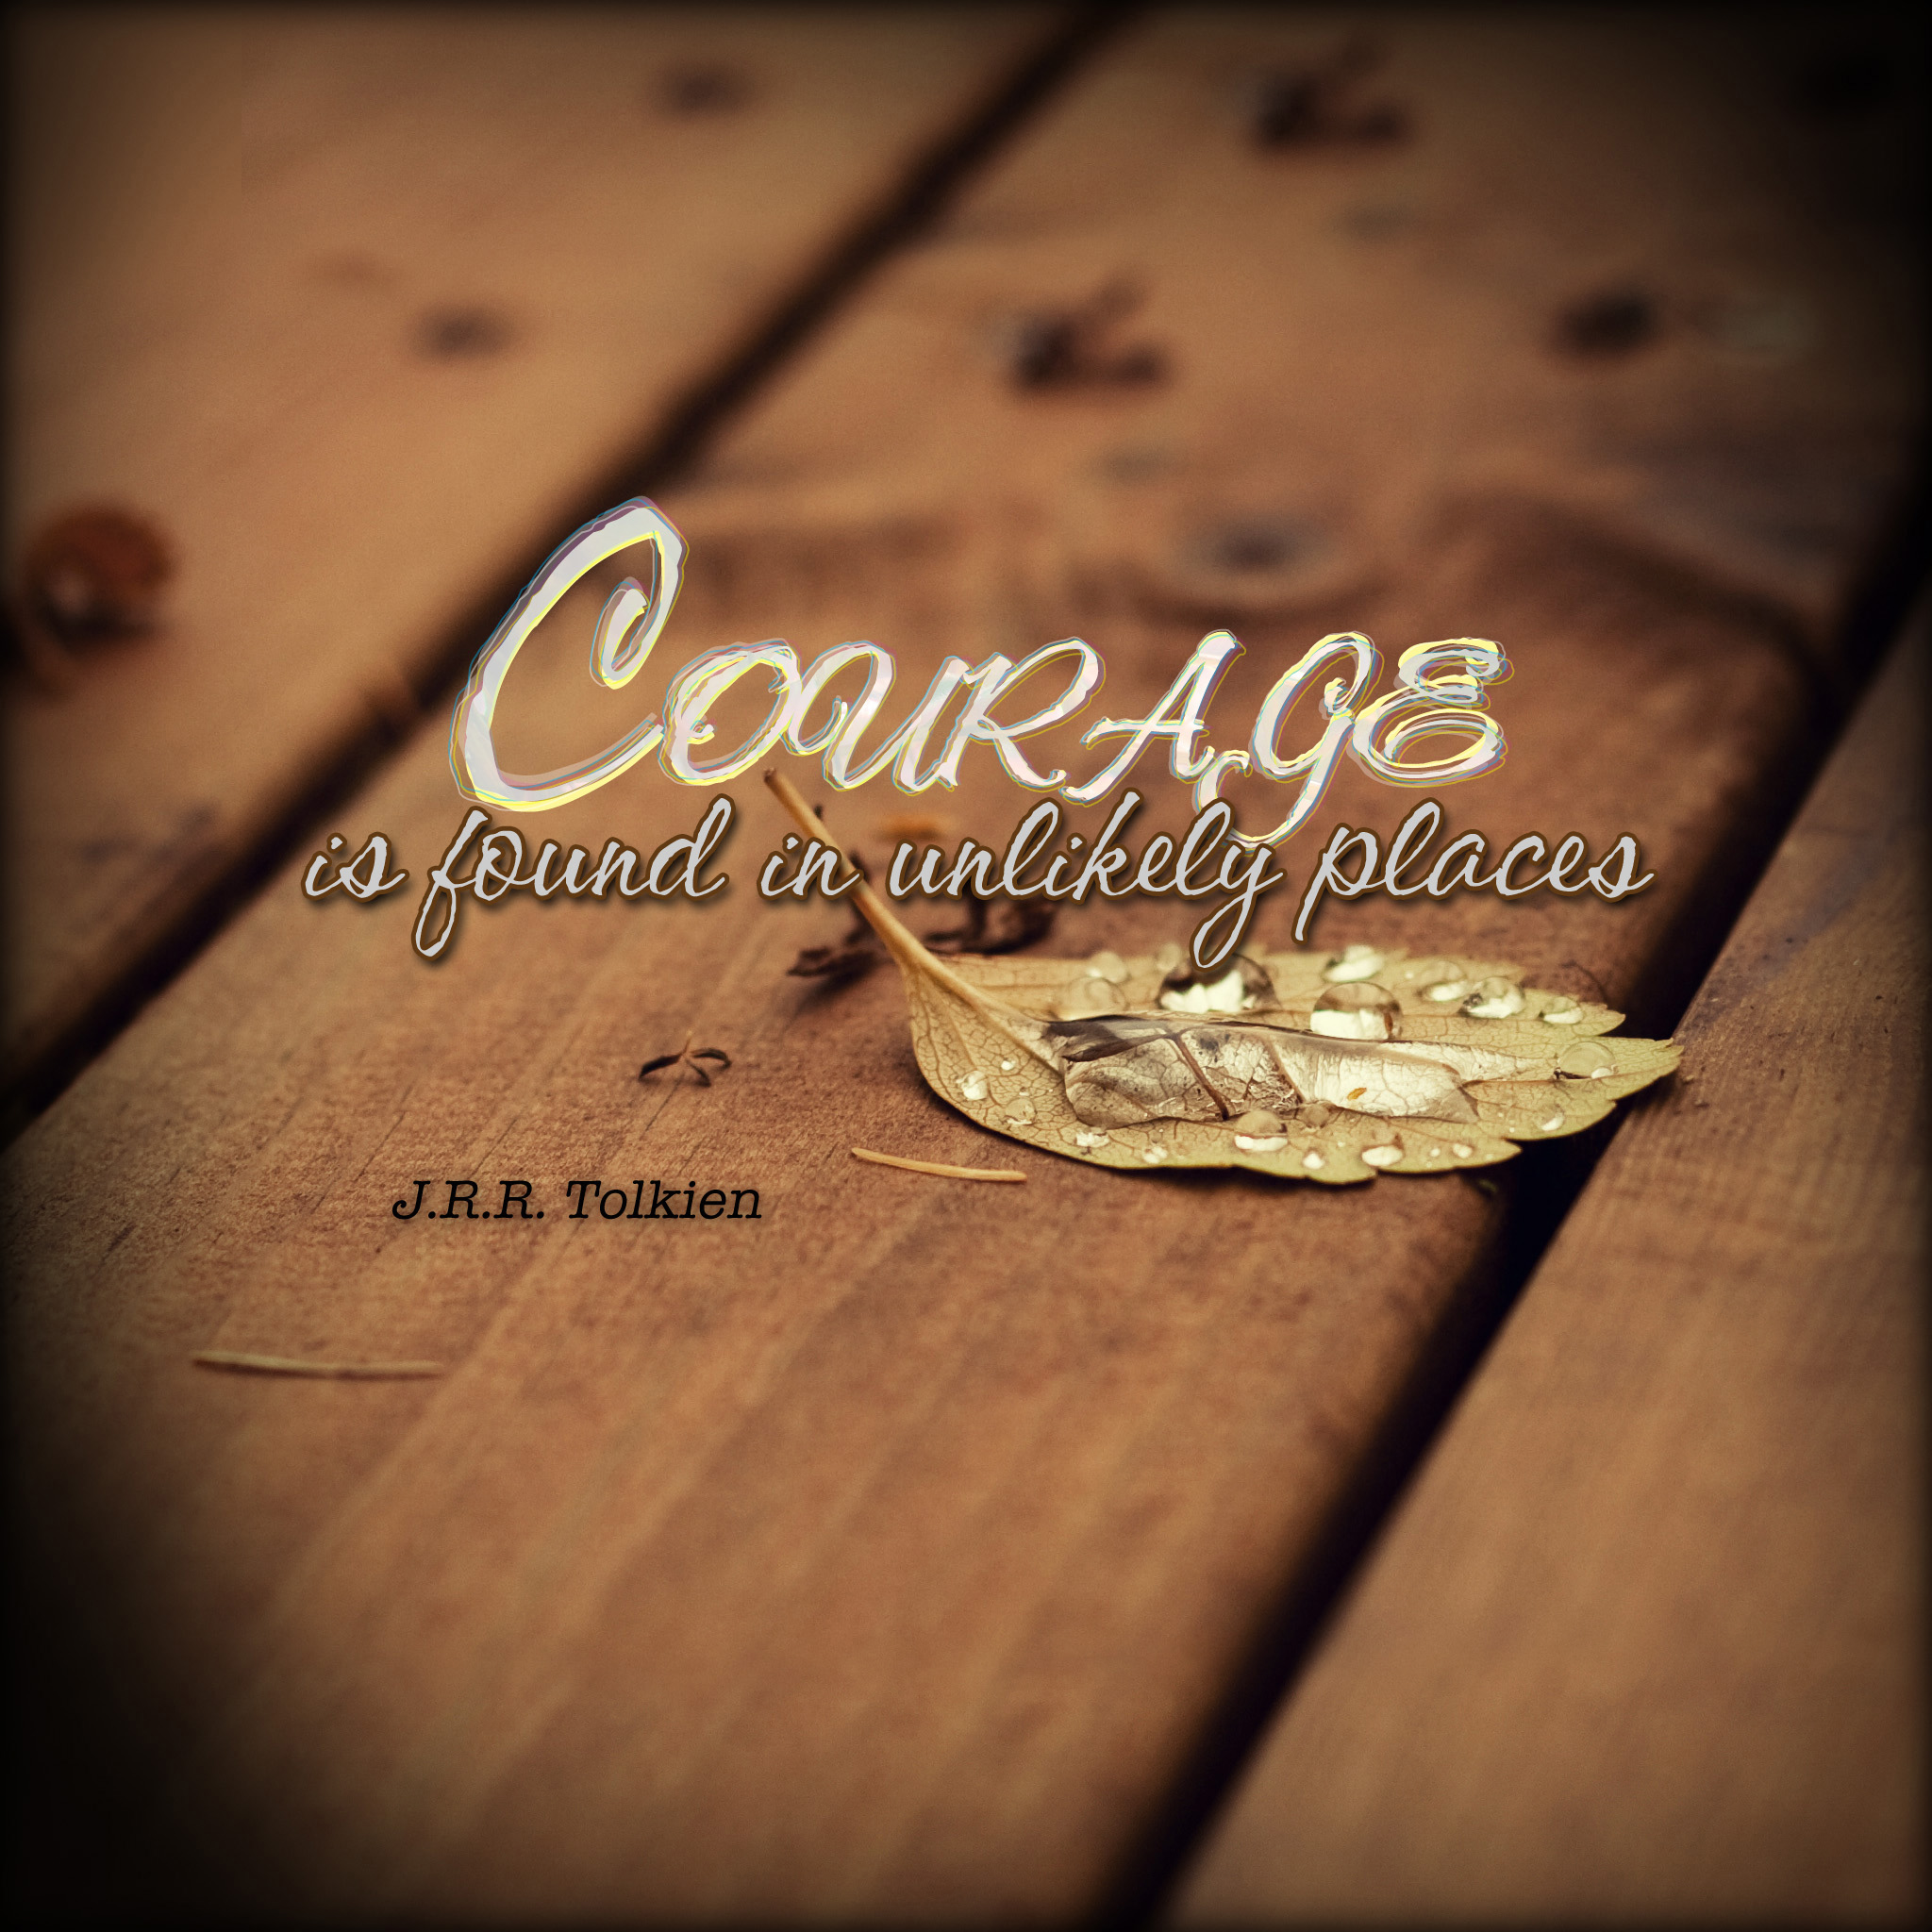 Lord Of The Rings Quotes Inspirational Motivation: R Tolkien Quotes About Courage. QuotesGram